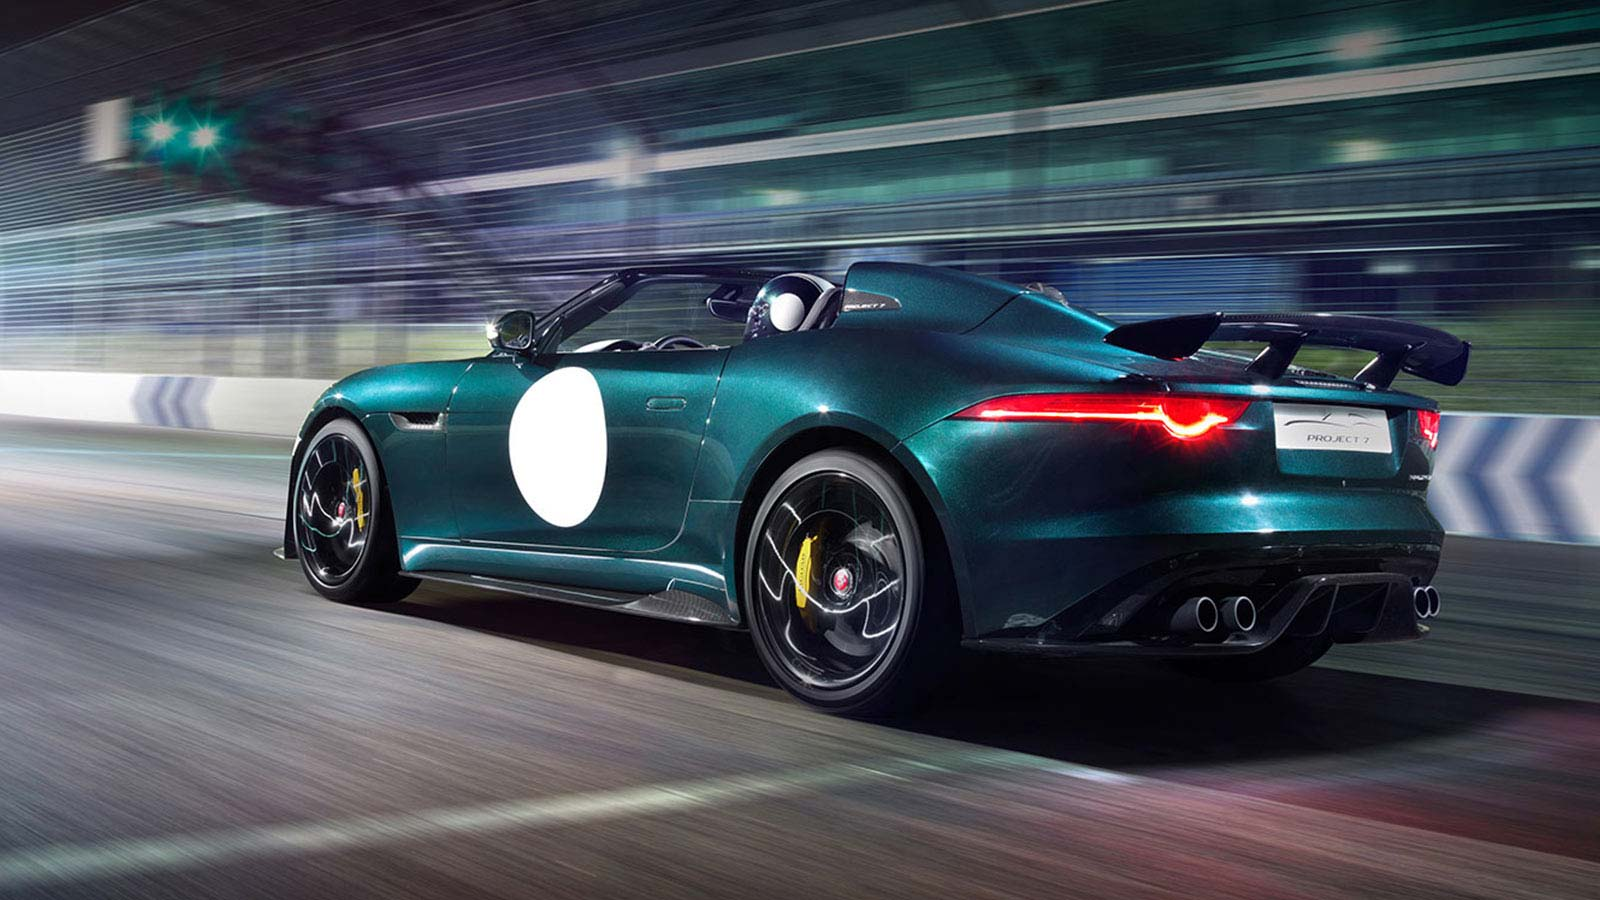 Jaguar F-TYPE Project 7 from behind racing in the dark.